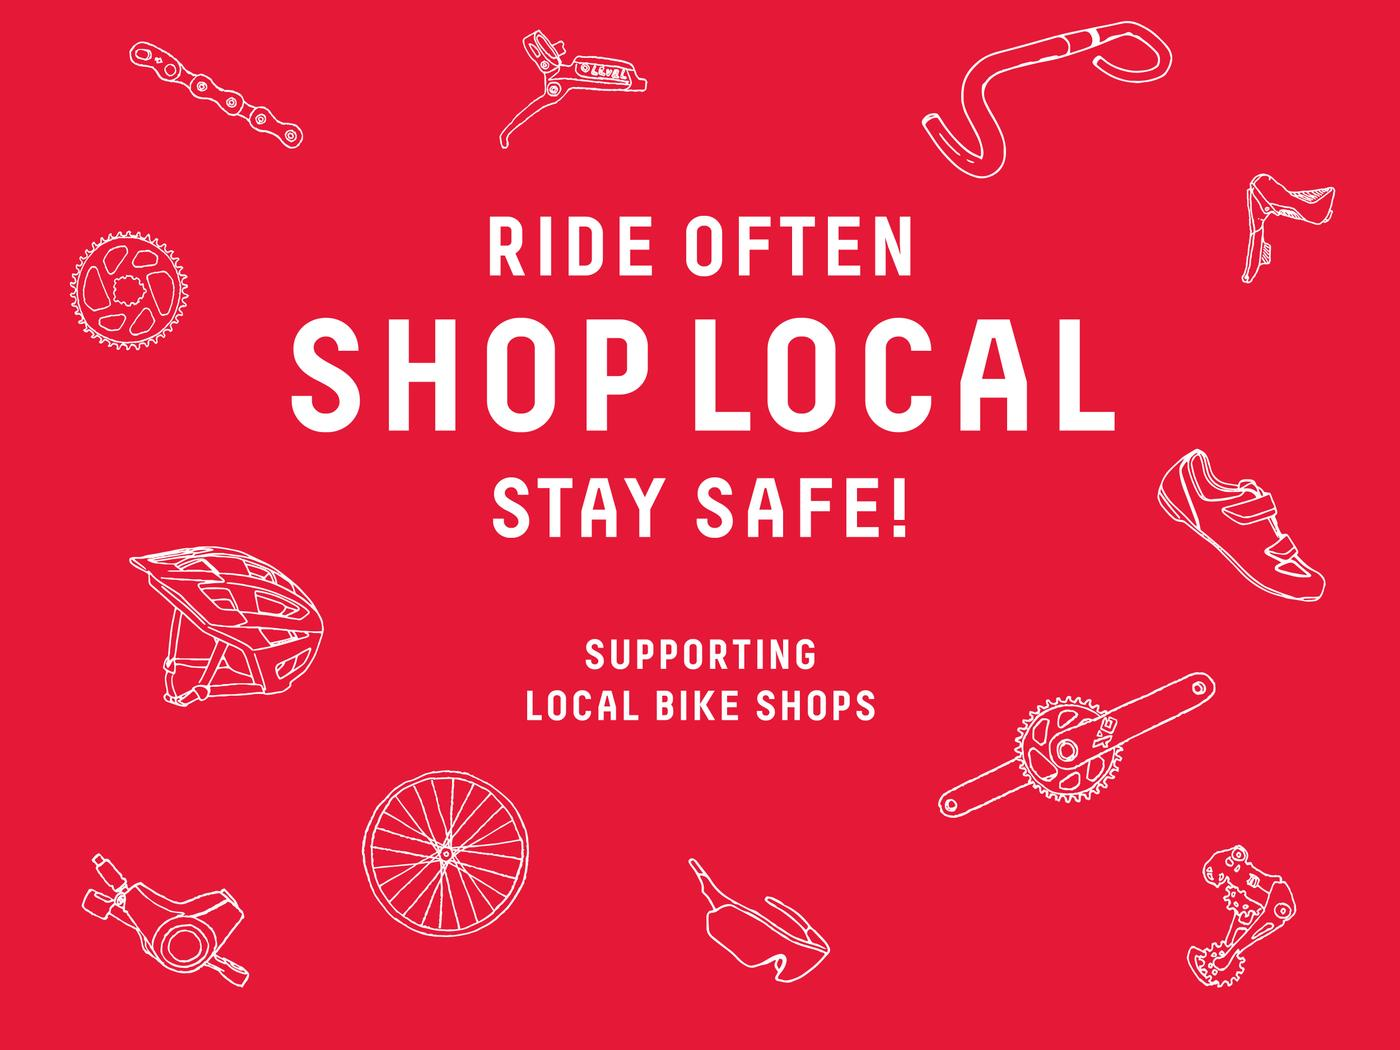 Ride Often, Shop Local, Stay Safe!